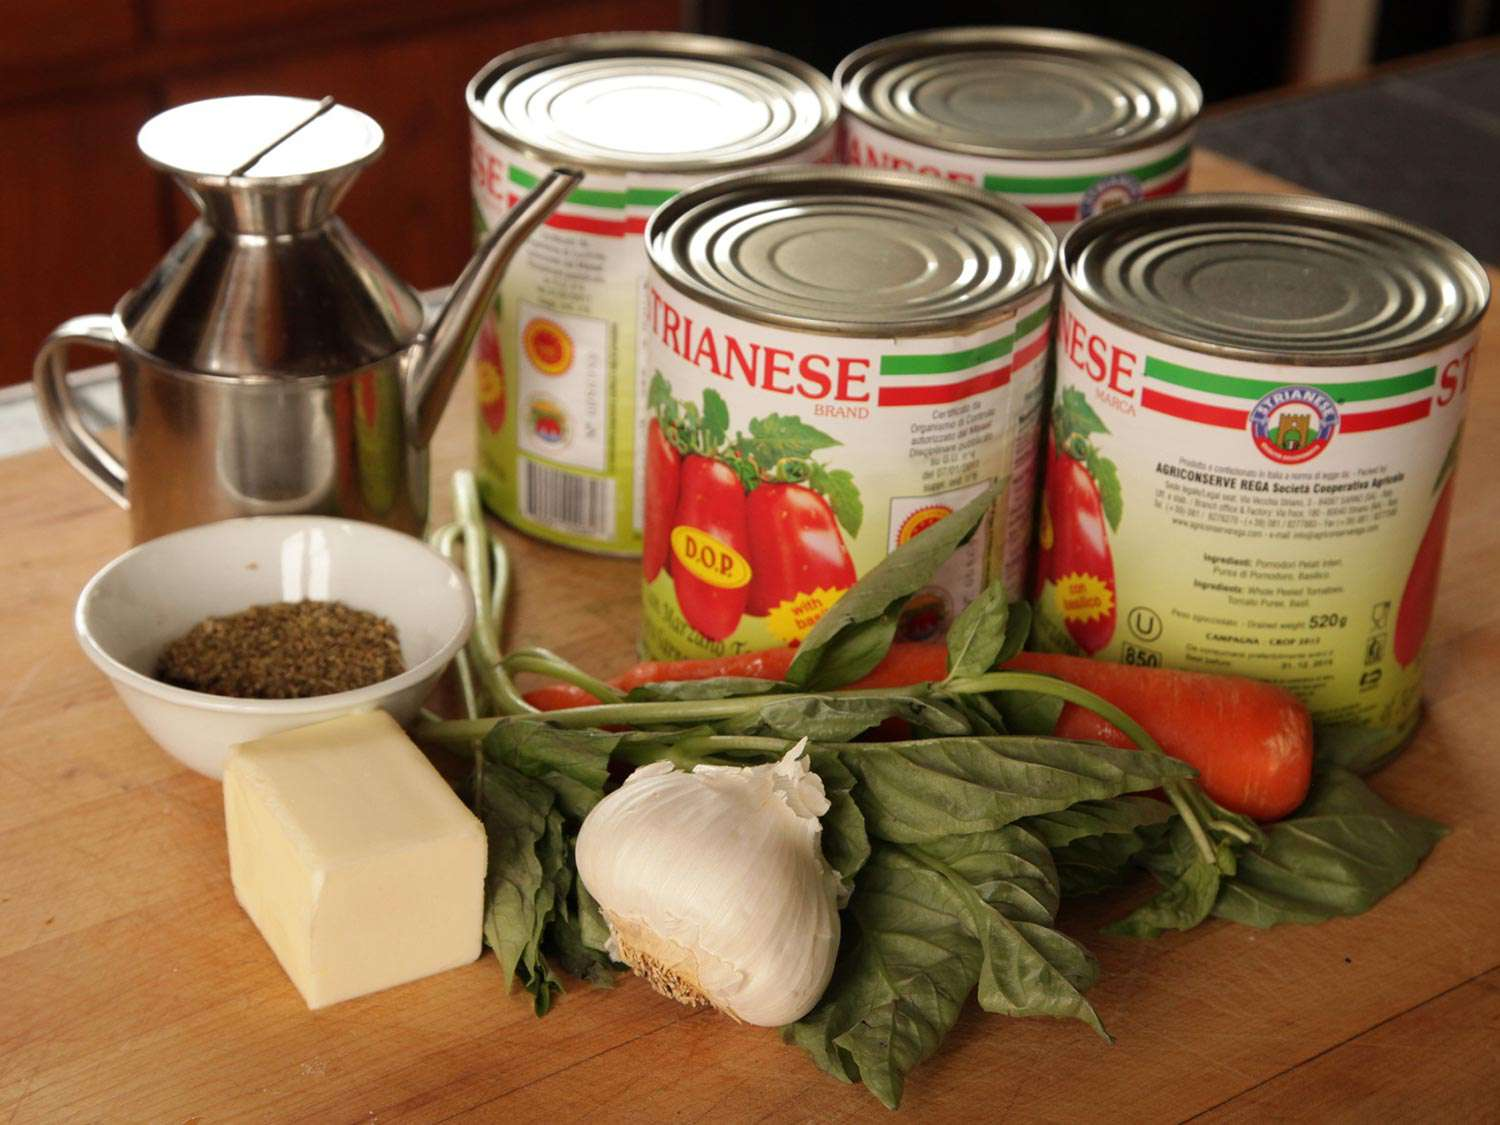 20140922-red-sauce-worth-waiting-for-recipe14.jpg